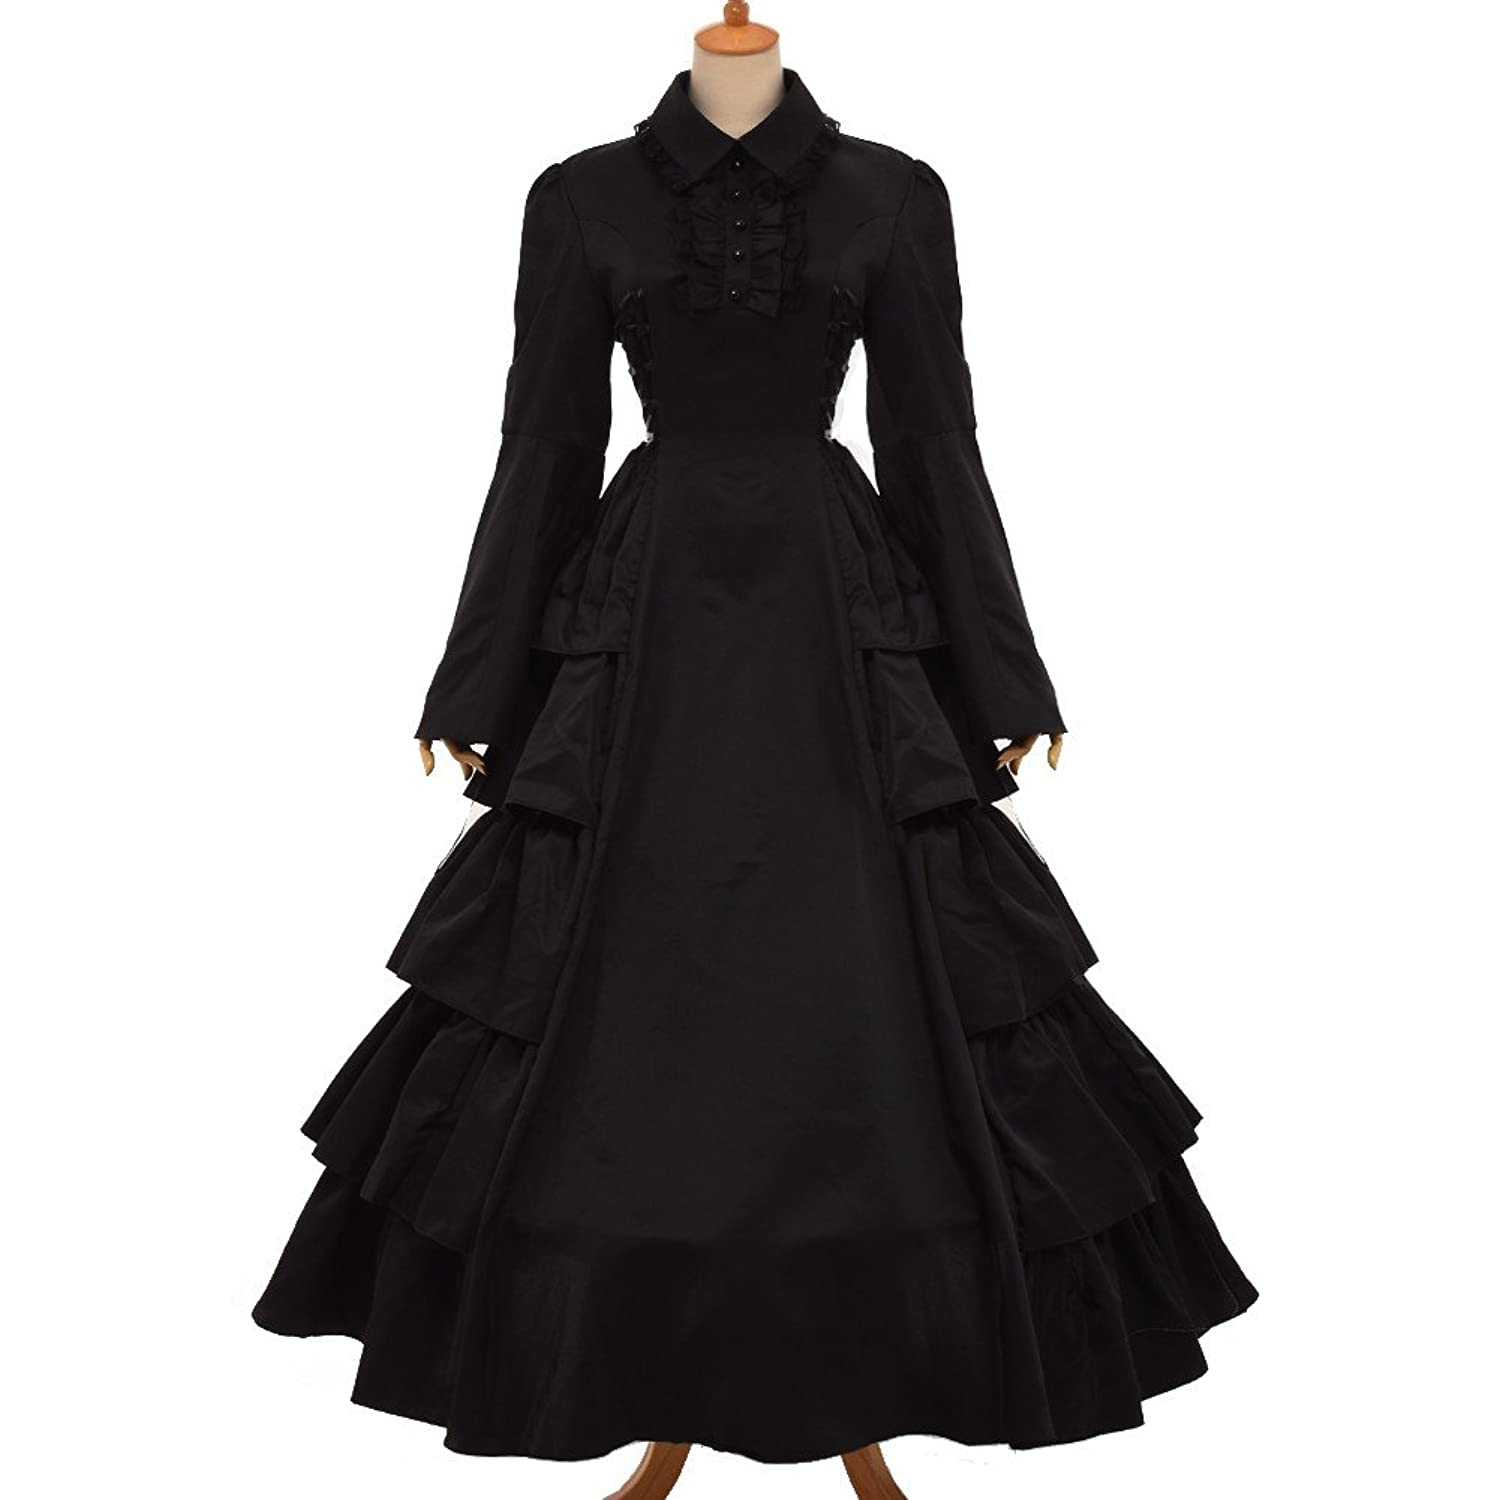 Victorian Dresses, Clothing: Patterns, Costumes, Custom Dresses Victorian Gothic Ball Gown Dress Cosutume  AT vintagedancer.com